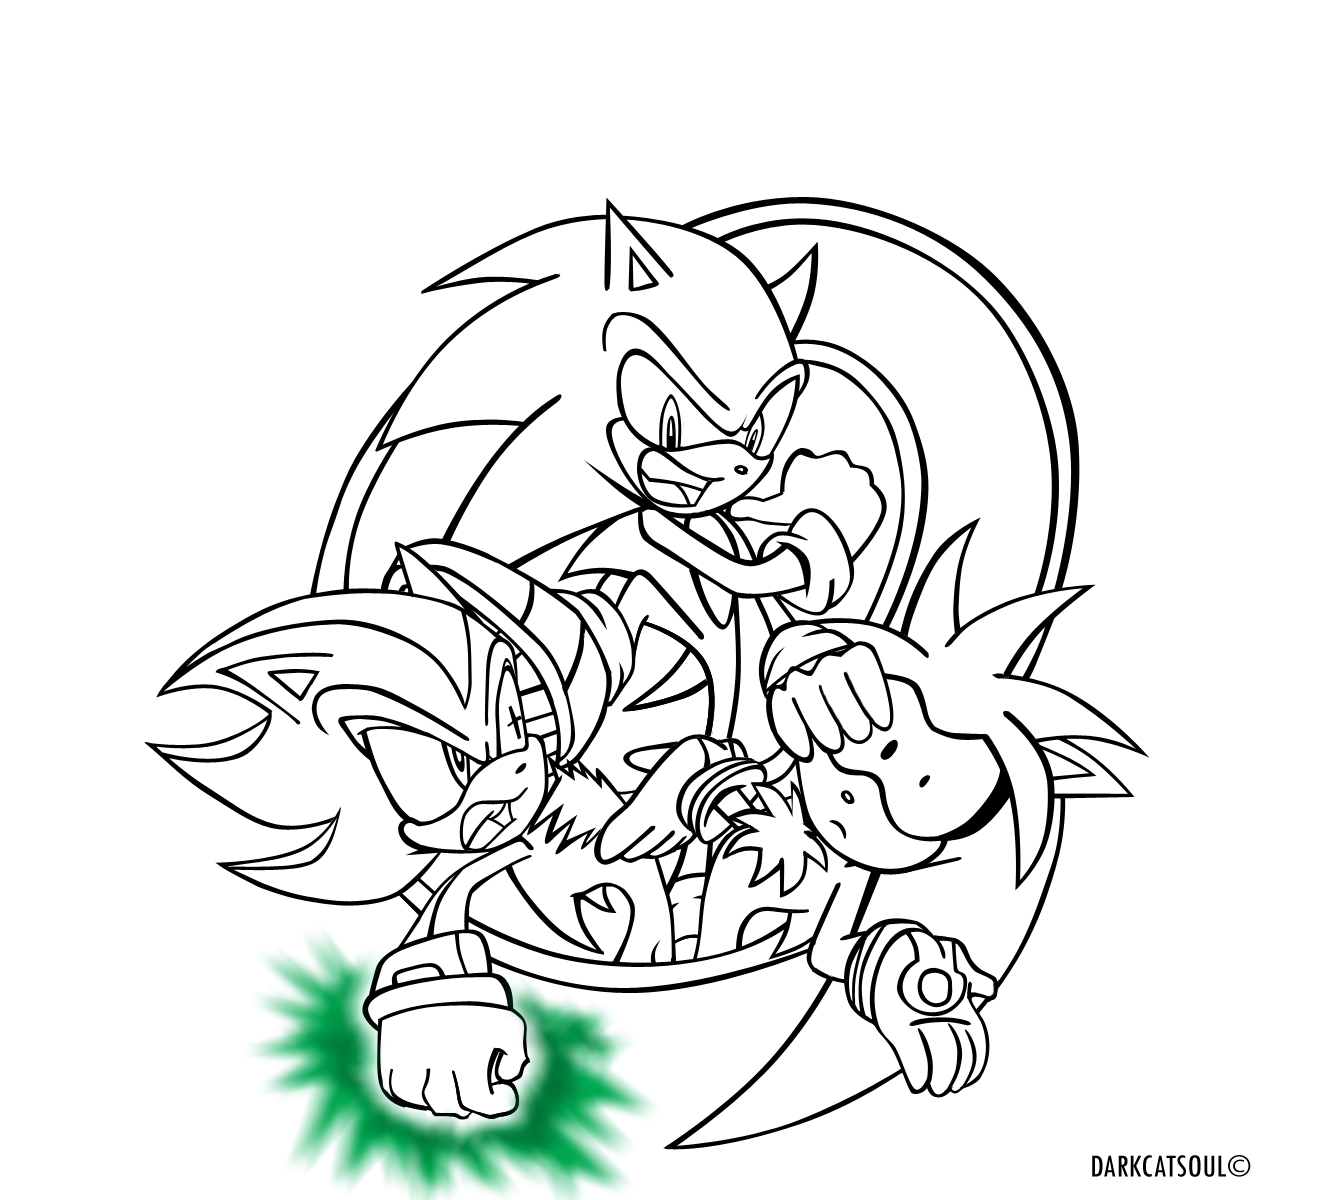 Sonic shadow silver lineart by darkcatsoul on deviantart for Sonic coloring pages online